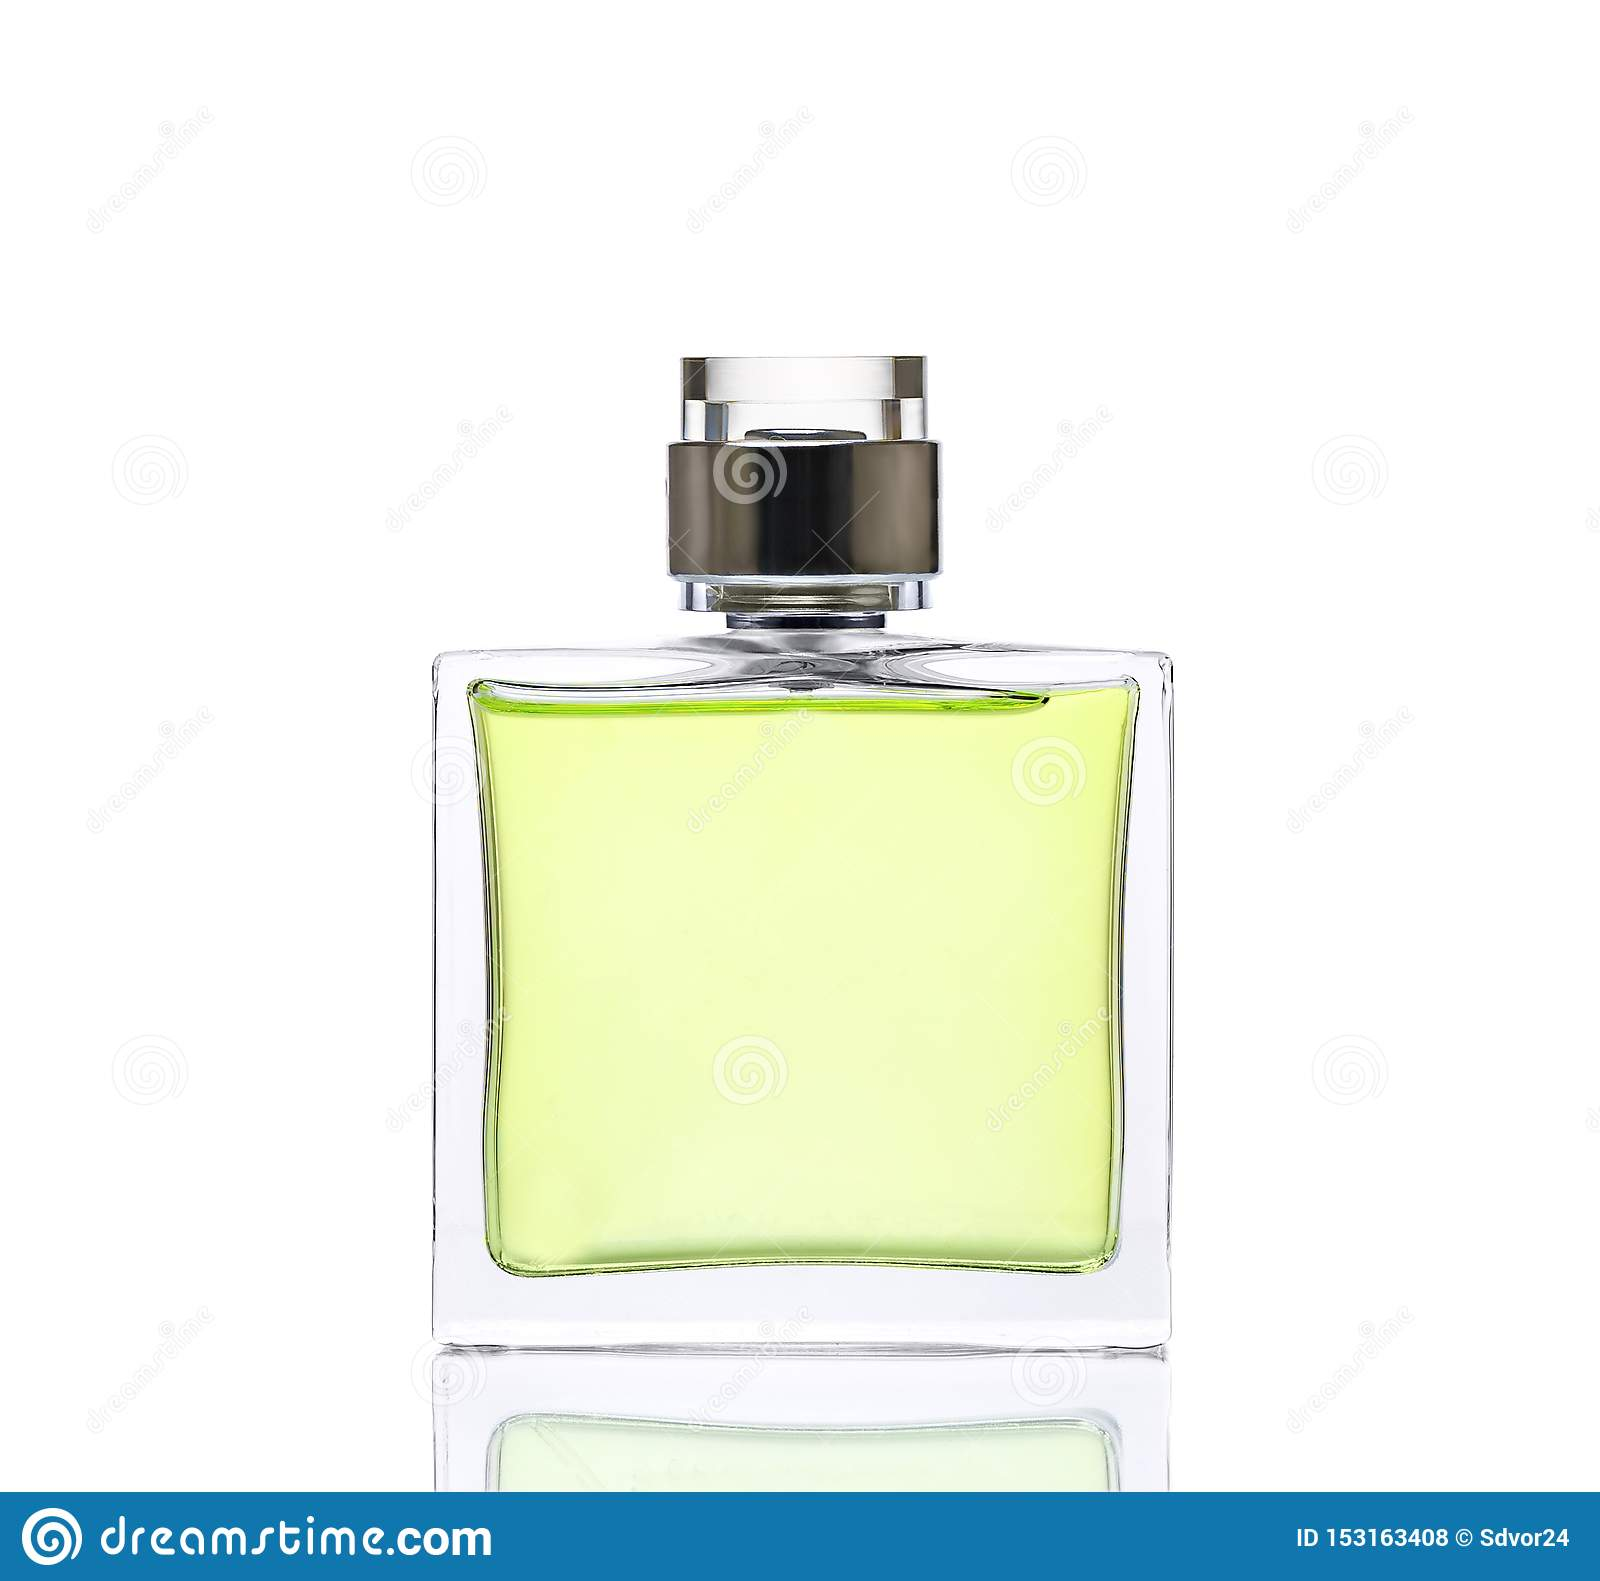 Luxurious green perfume. Feminine beauty concept, studio photography of perfume bottle - isolated on white background